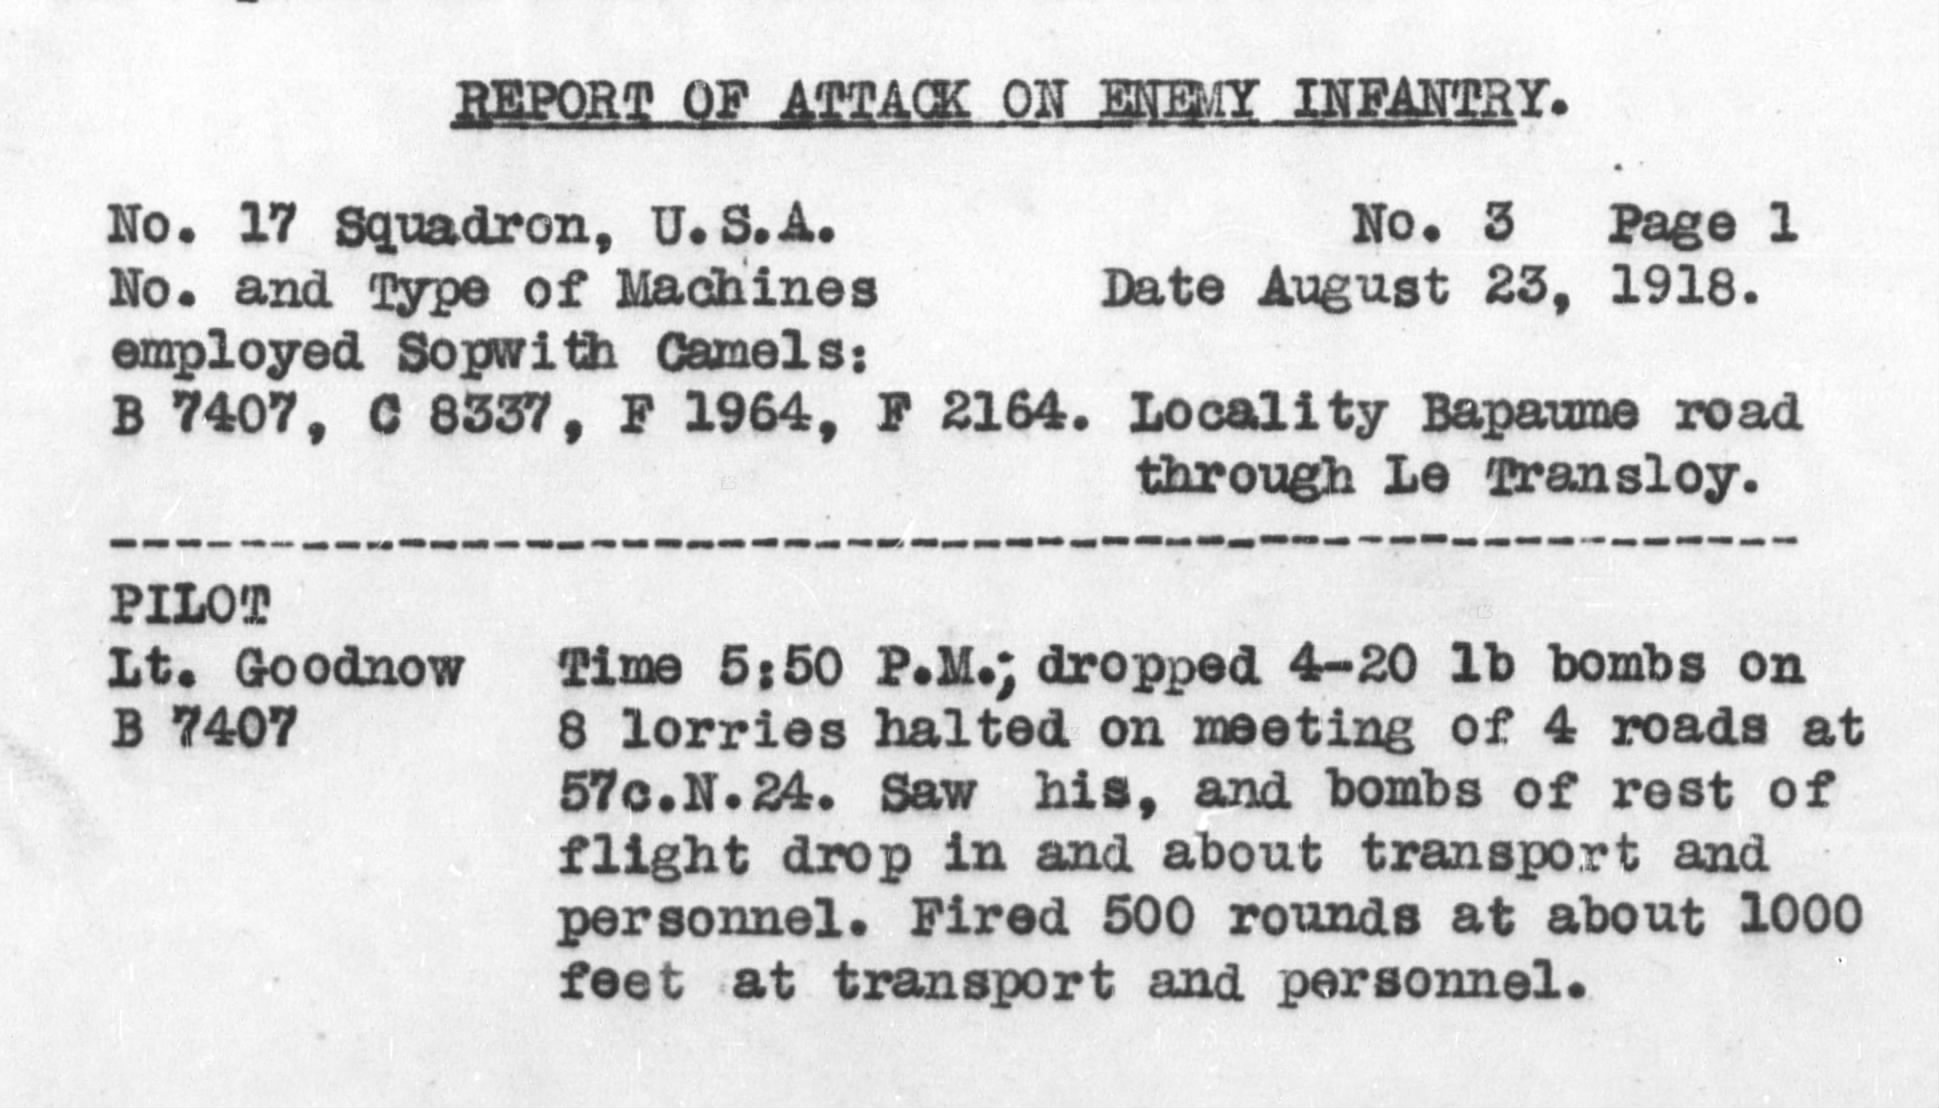 First part of a typed bombing report for August 23, 1918, with account of Goodnow's activity.